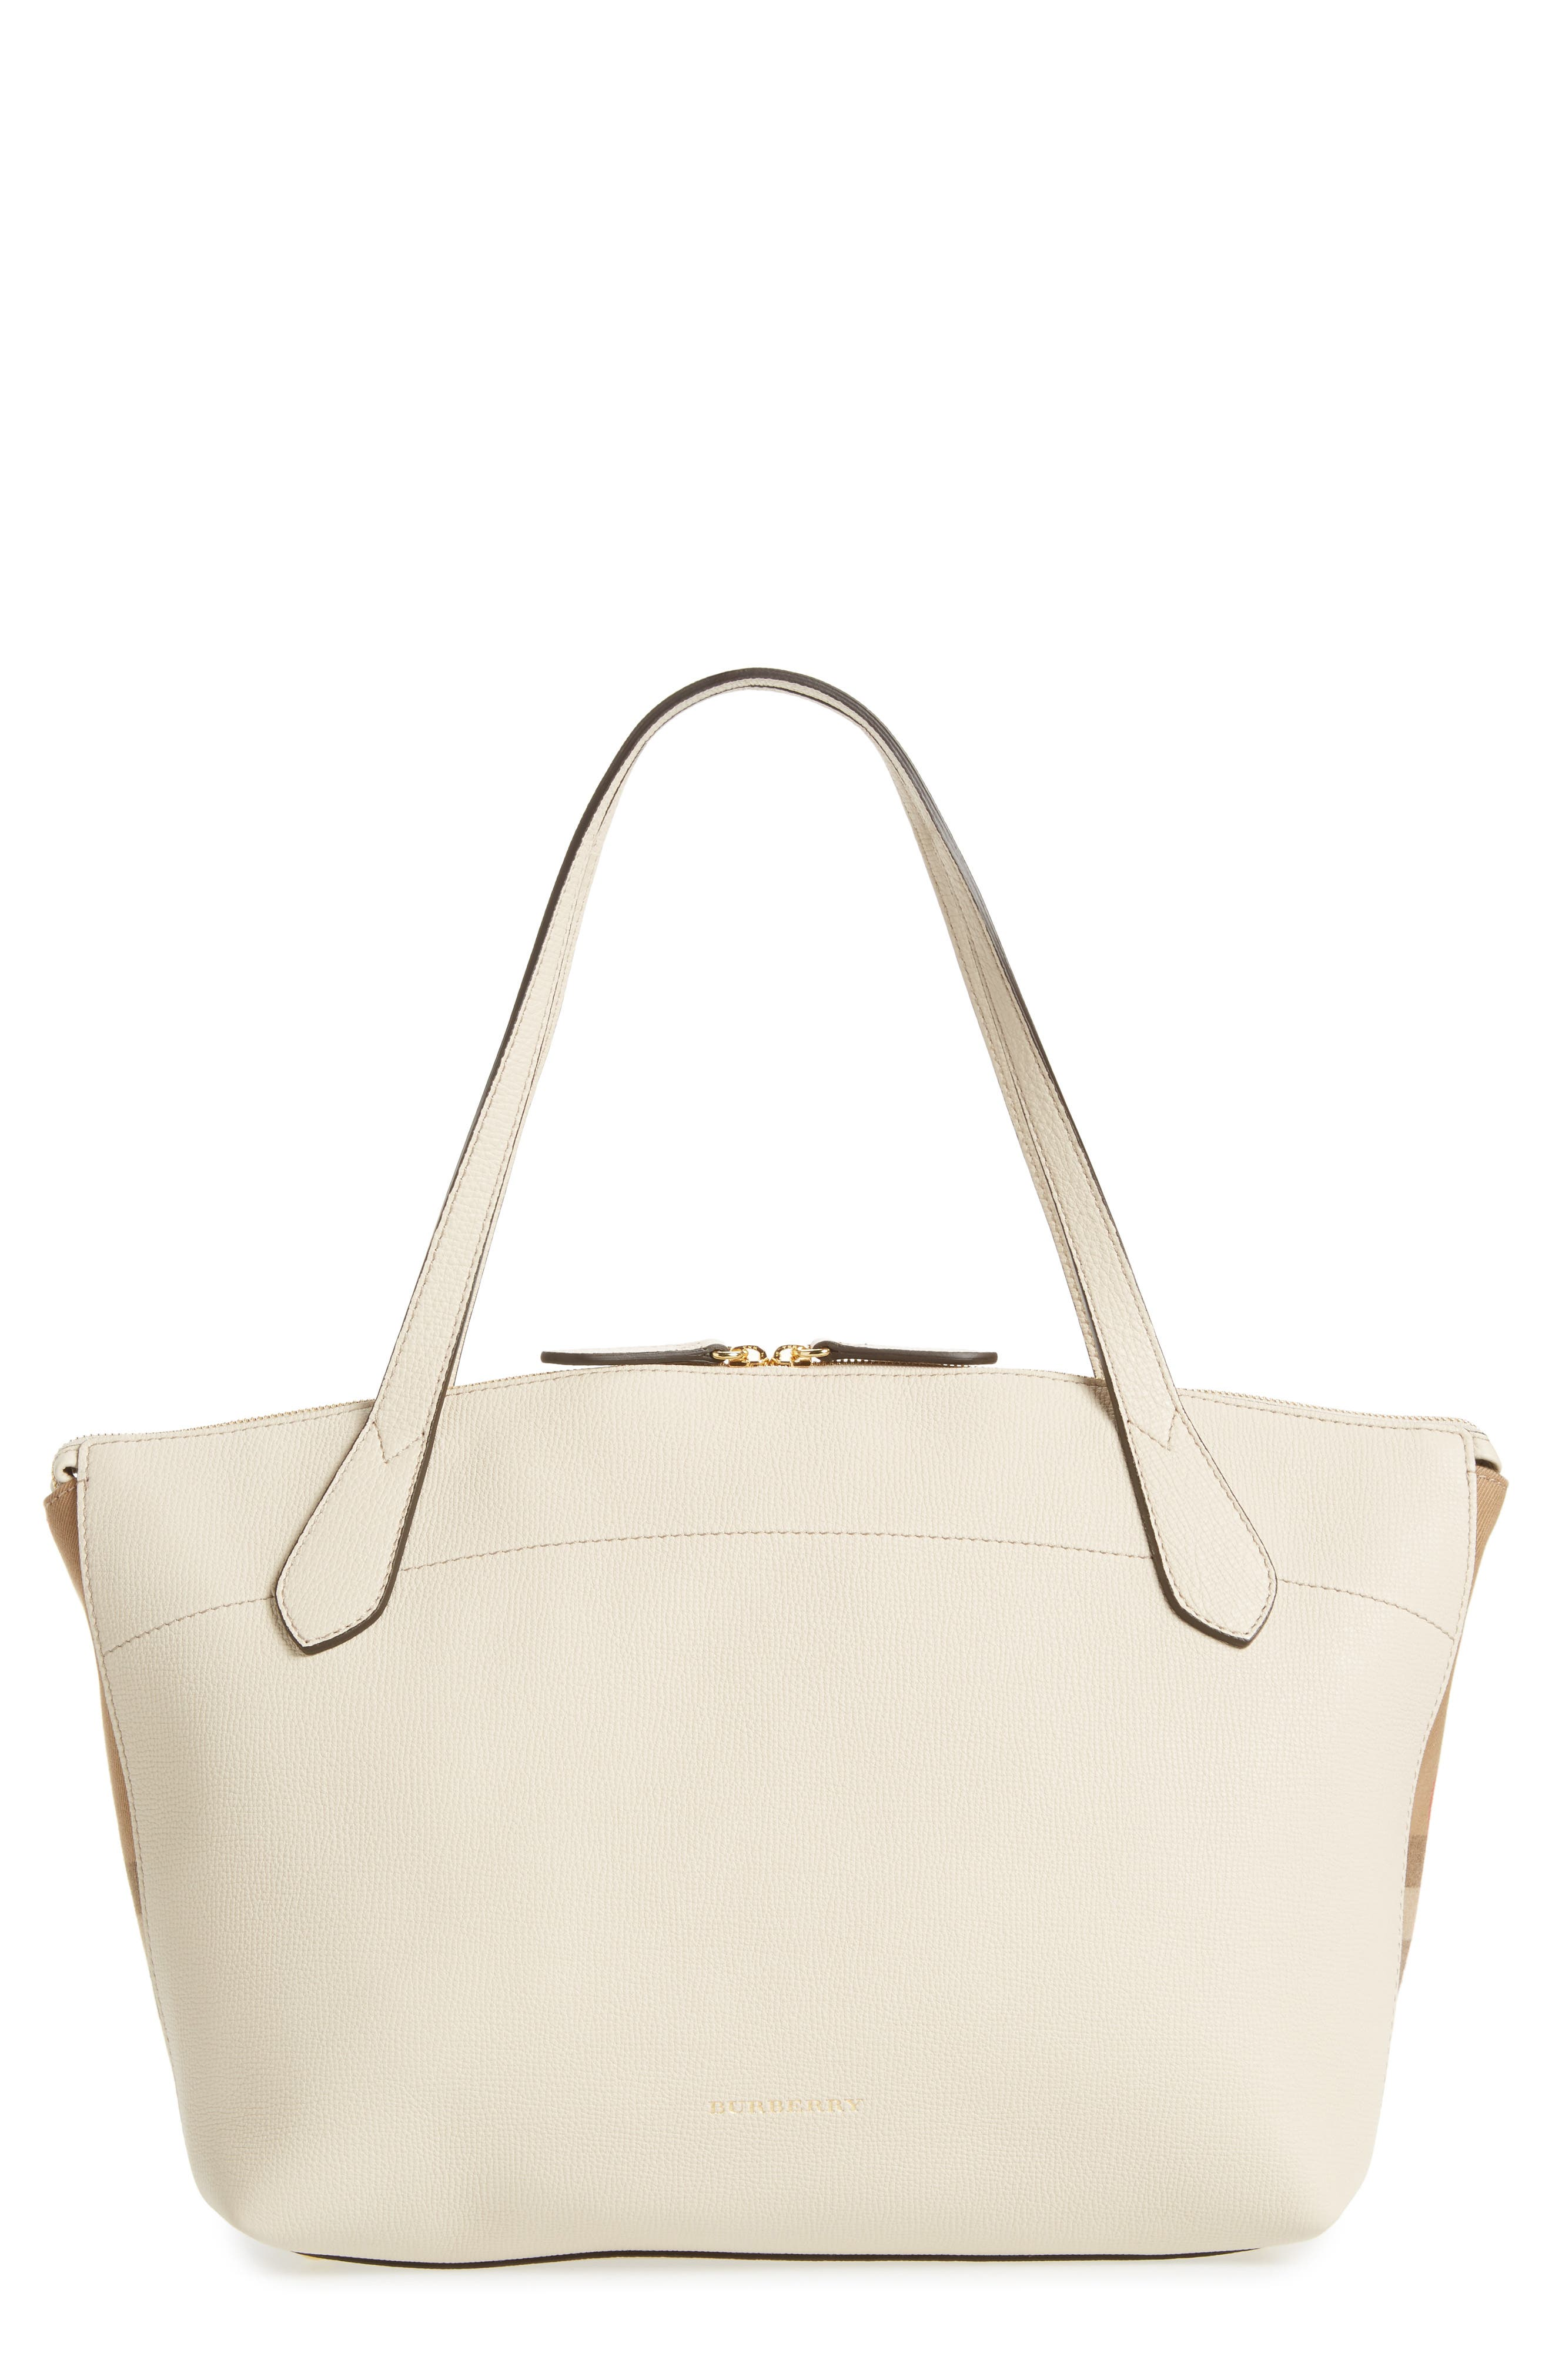 BURBERRY Welburn House Check & Leather Tote